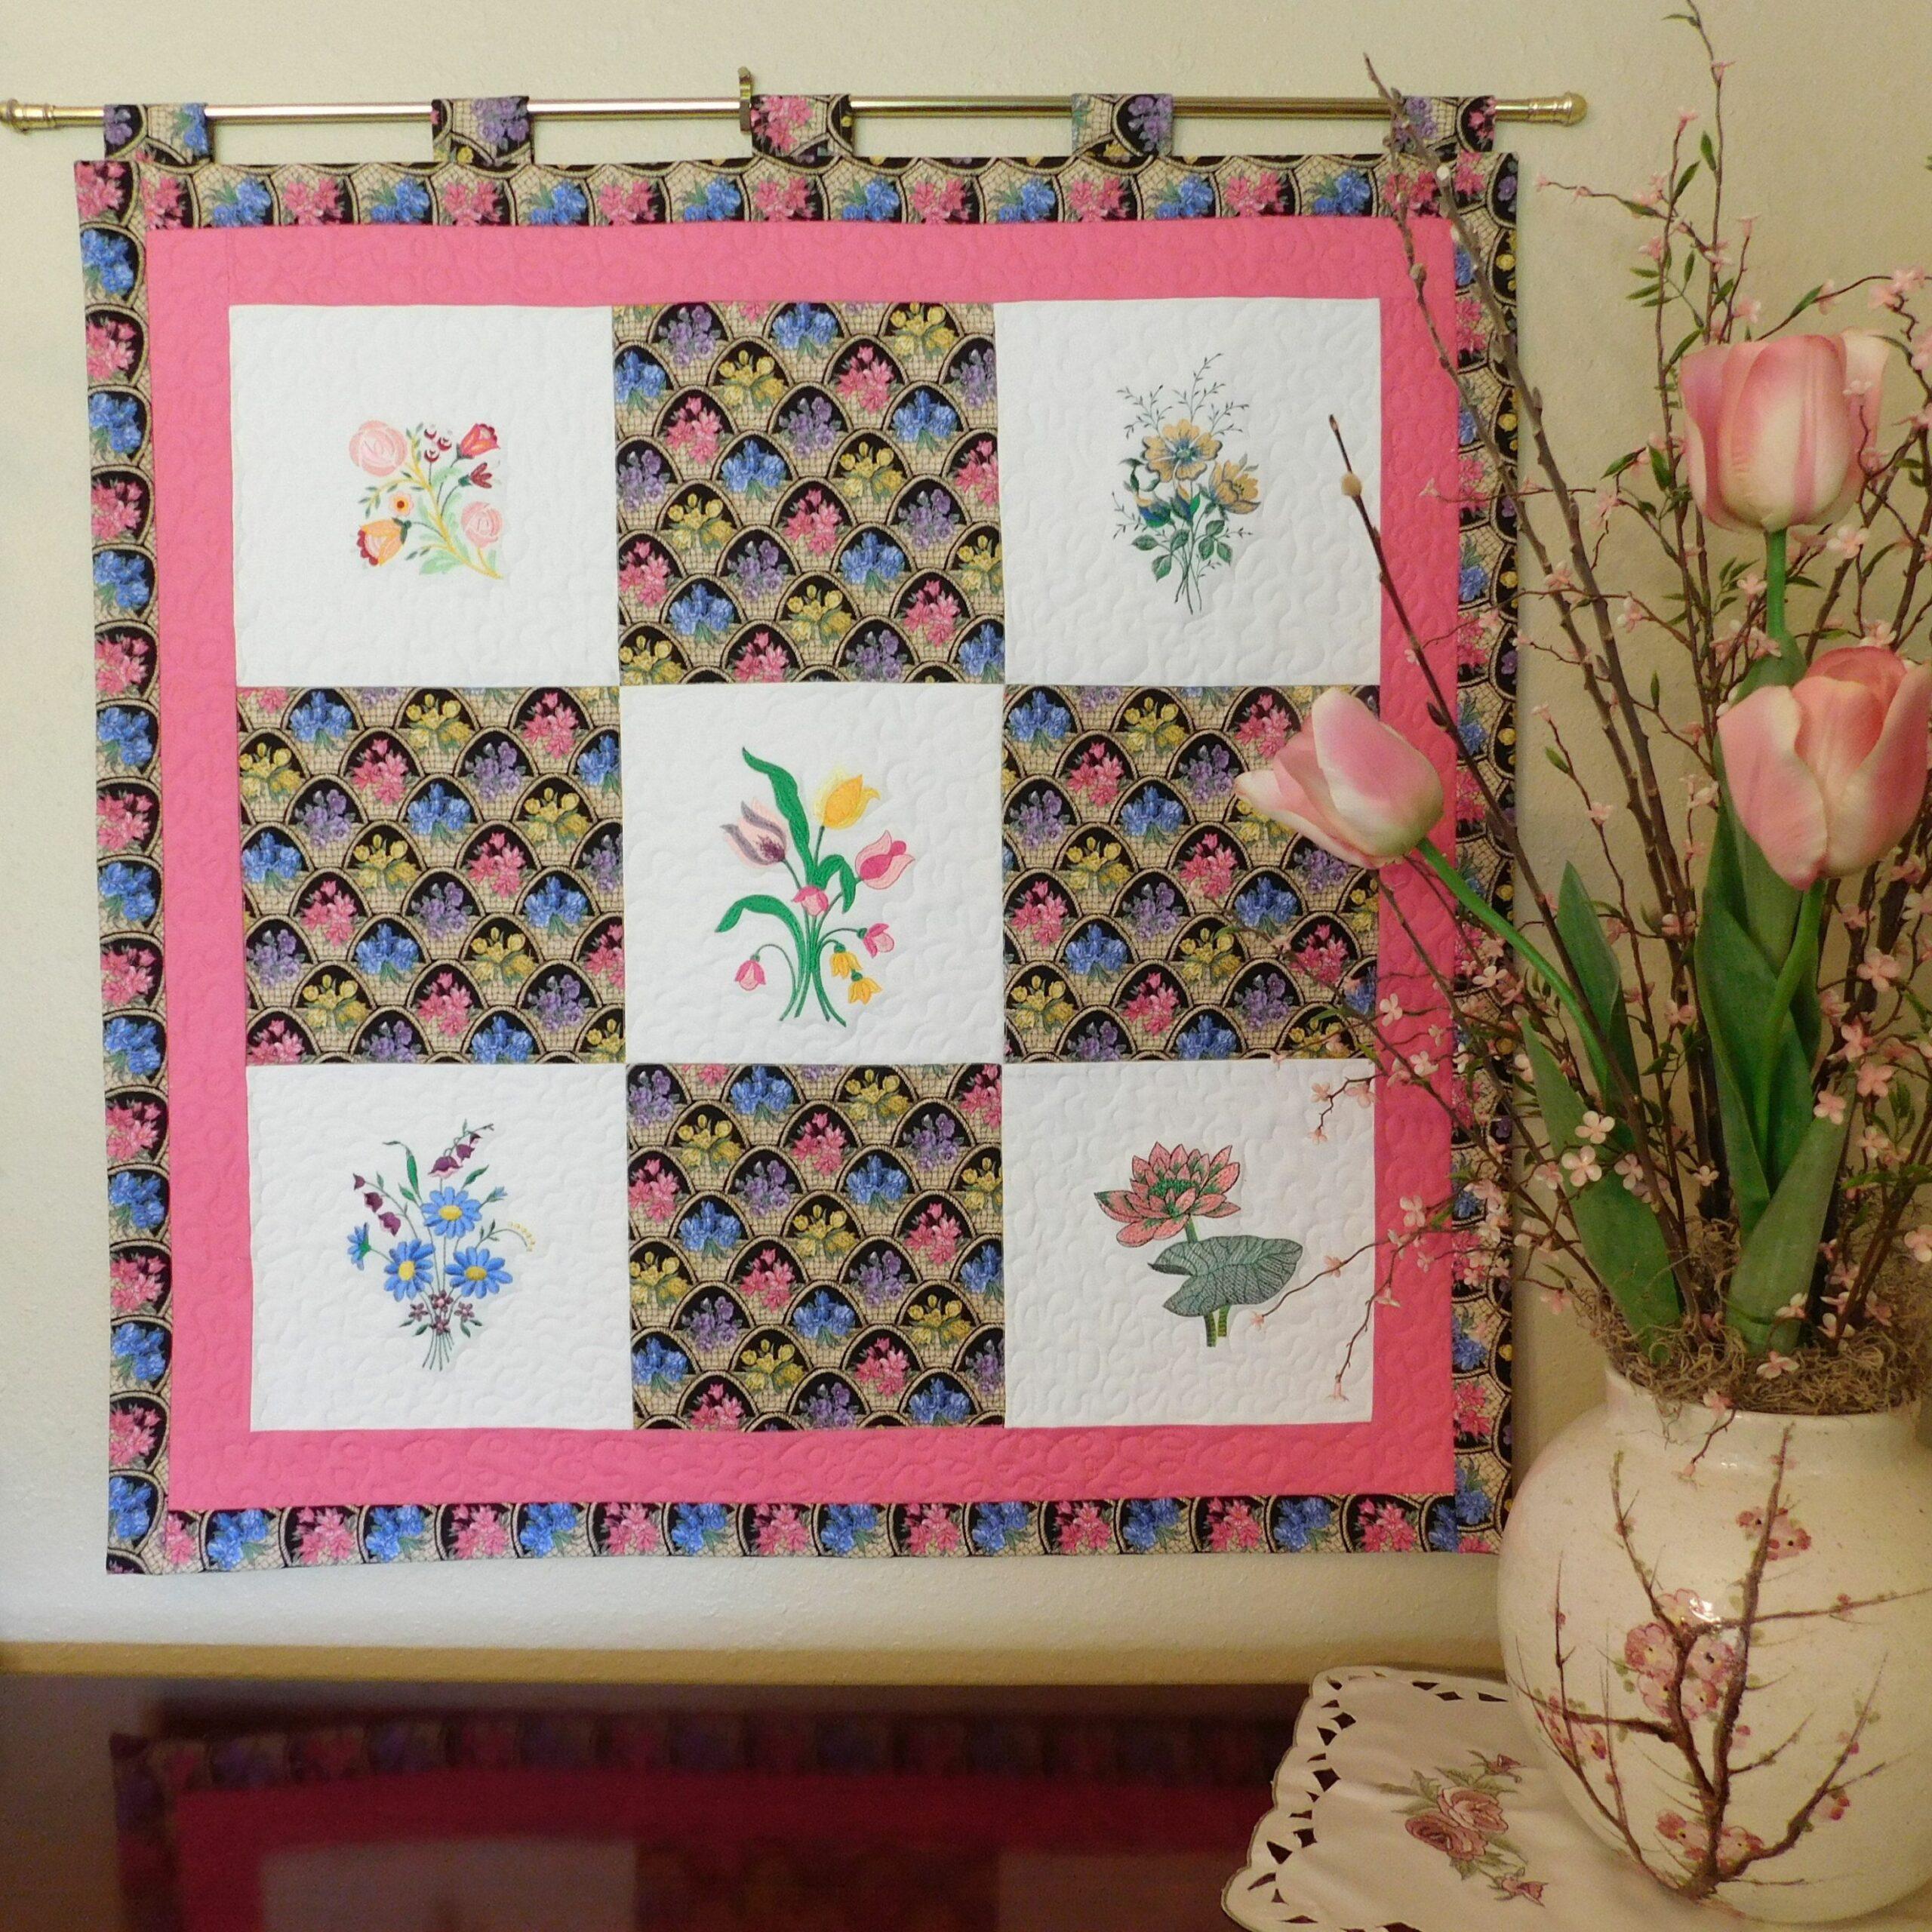 Home Decor Quilted Wall Hanging, Floral Design, Fabric Wall Decor ...